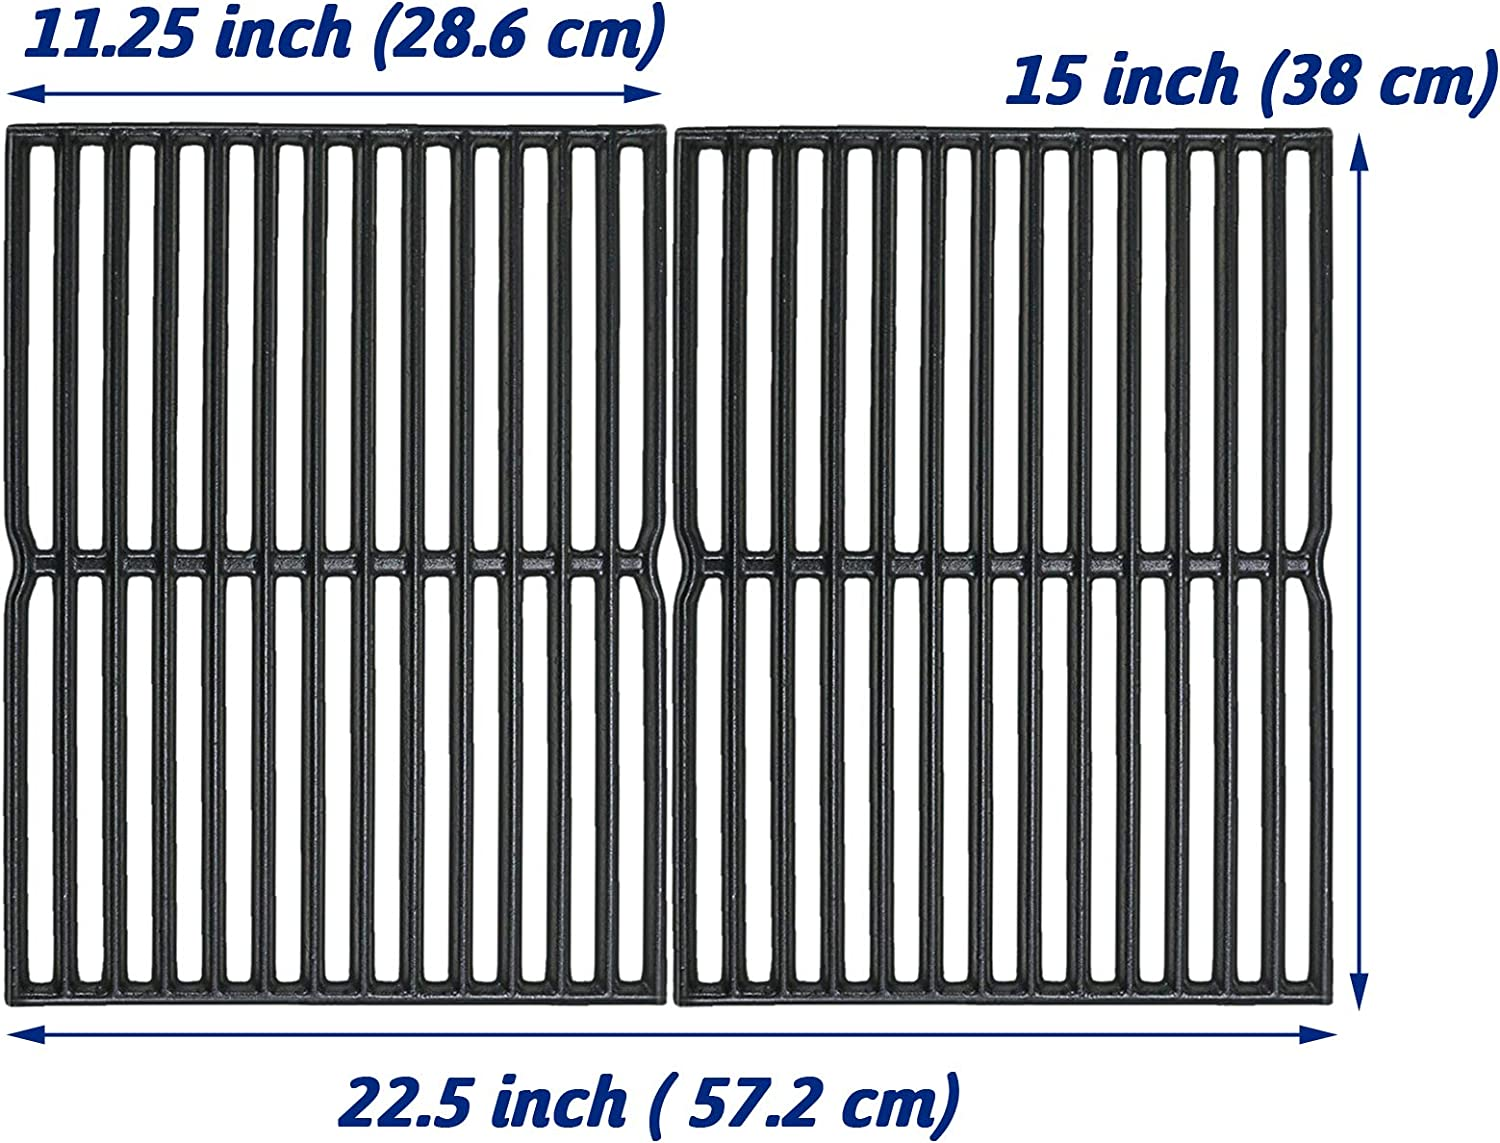 Utheer 7522 Cooking Grid Grate 15 x 11.25 Inch for Weber Spirit 200 210 with Side Control, Spirit 500, Genesis Silver A, Grill Replacement Parts for Weber 7521 7522 7523 65904 65905, Fits Kenmore